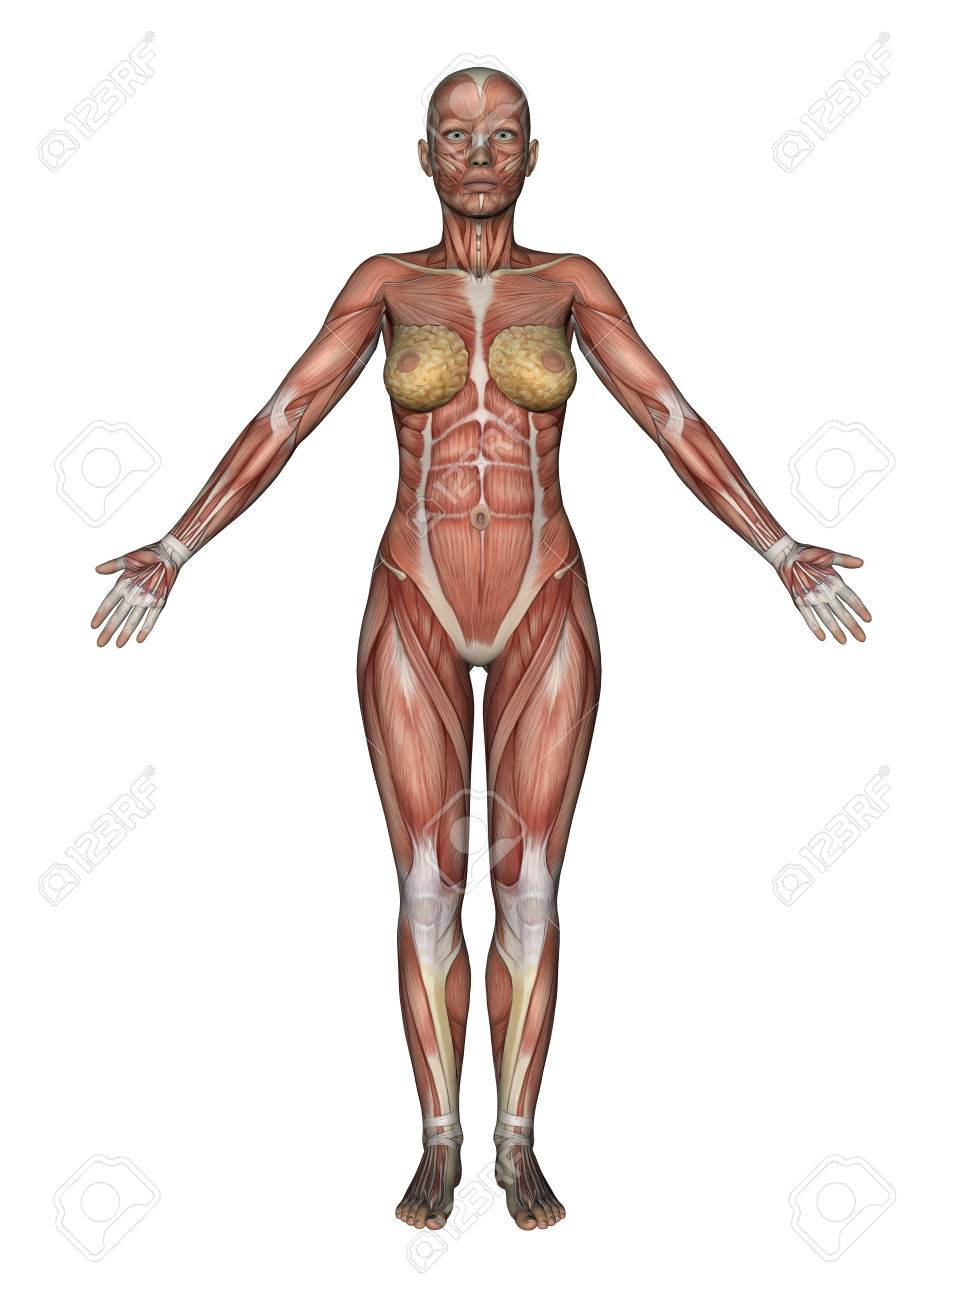 3D Render Of A Female Figure With Smooth Skin In Standing Pose Stock ...